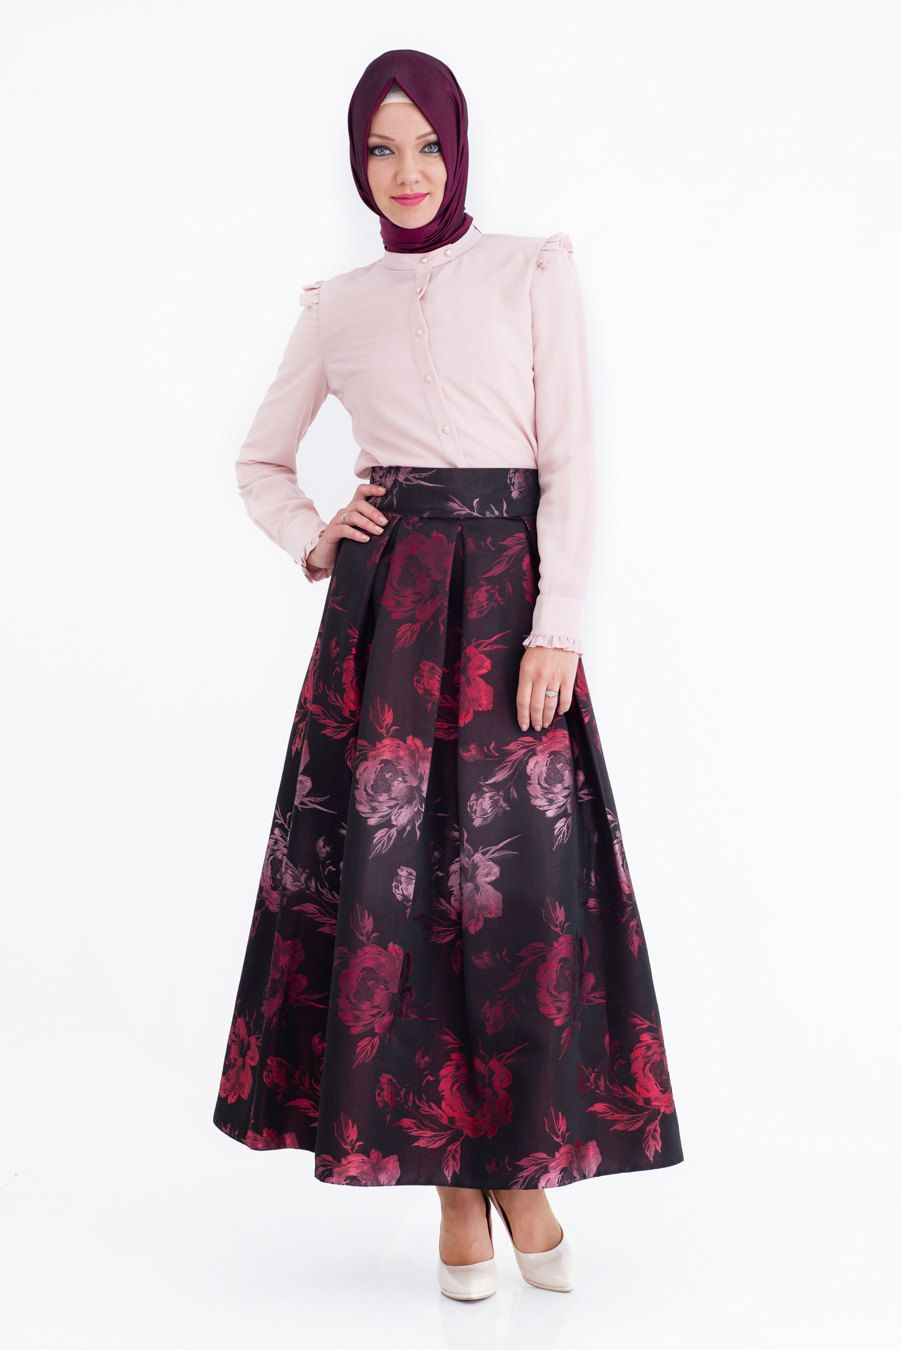 1dfb509cd evening maxi skirt floral long skirt dark brown special occasion skirt, red  and pink floral skirt, long modest skirt, dressy skirt by NevaStyleCanada  on ...